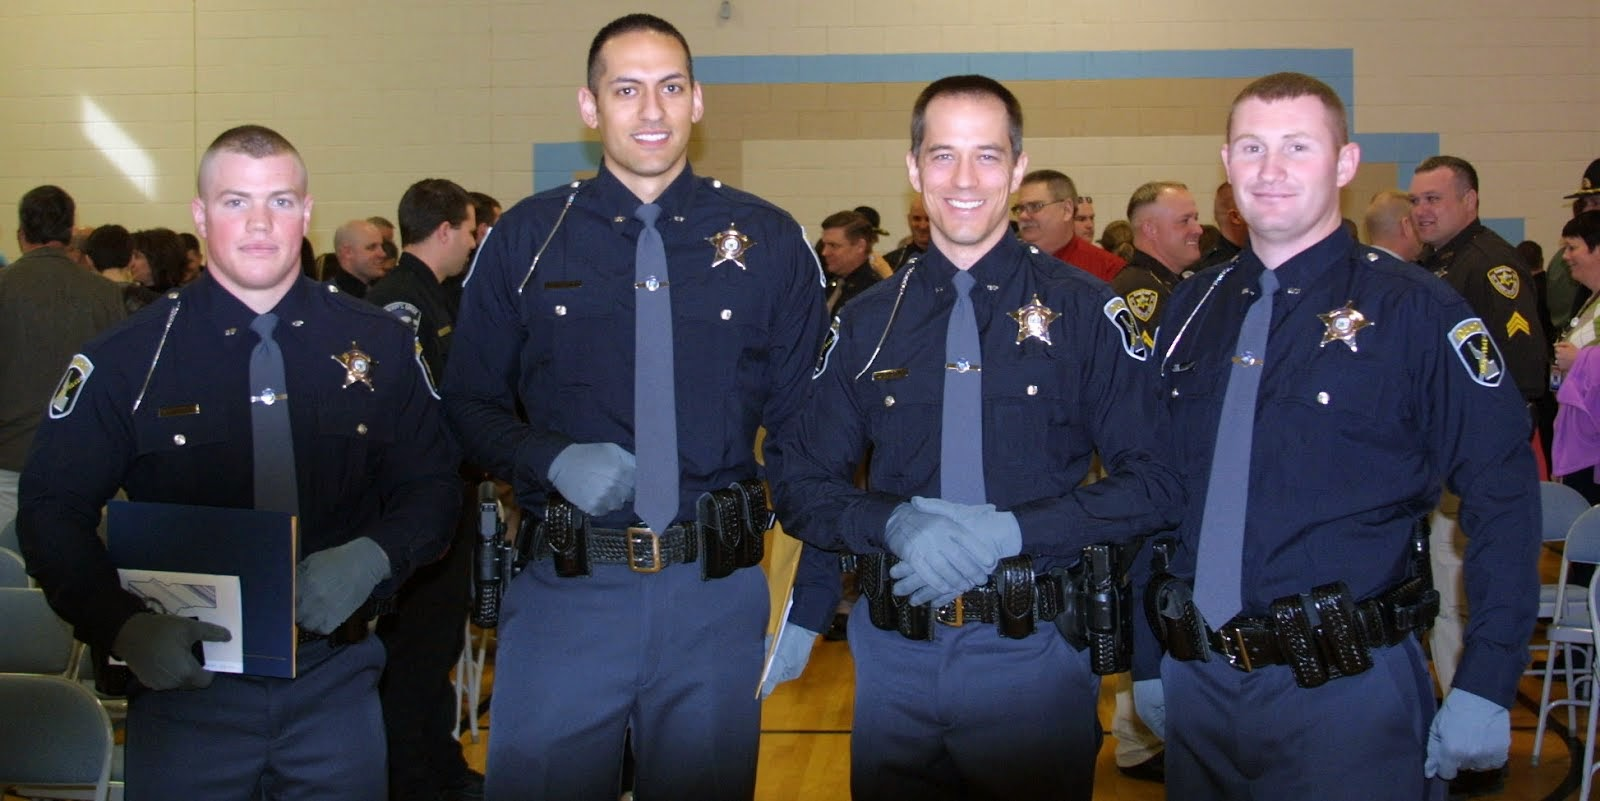 Idaho State Police Recruits After POST Graduation